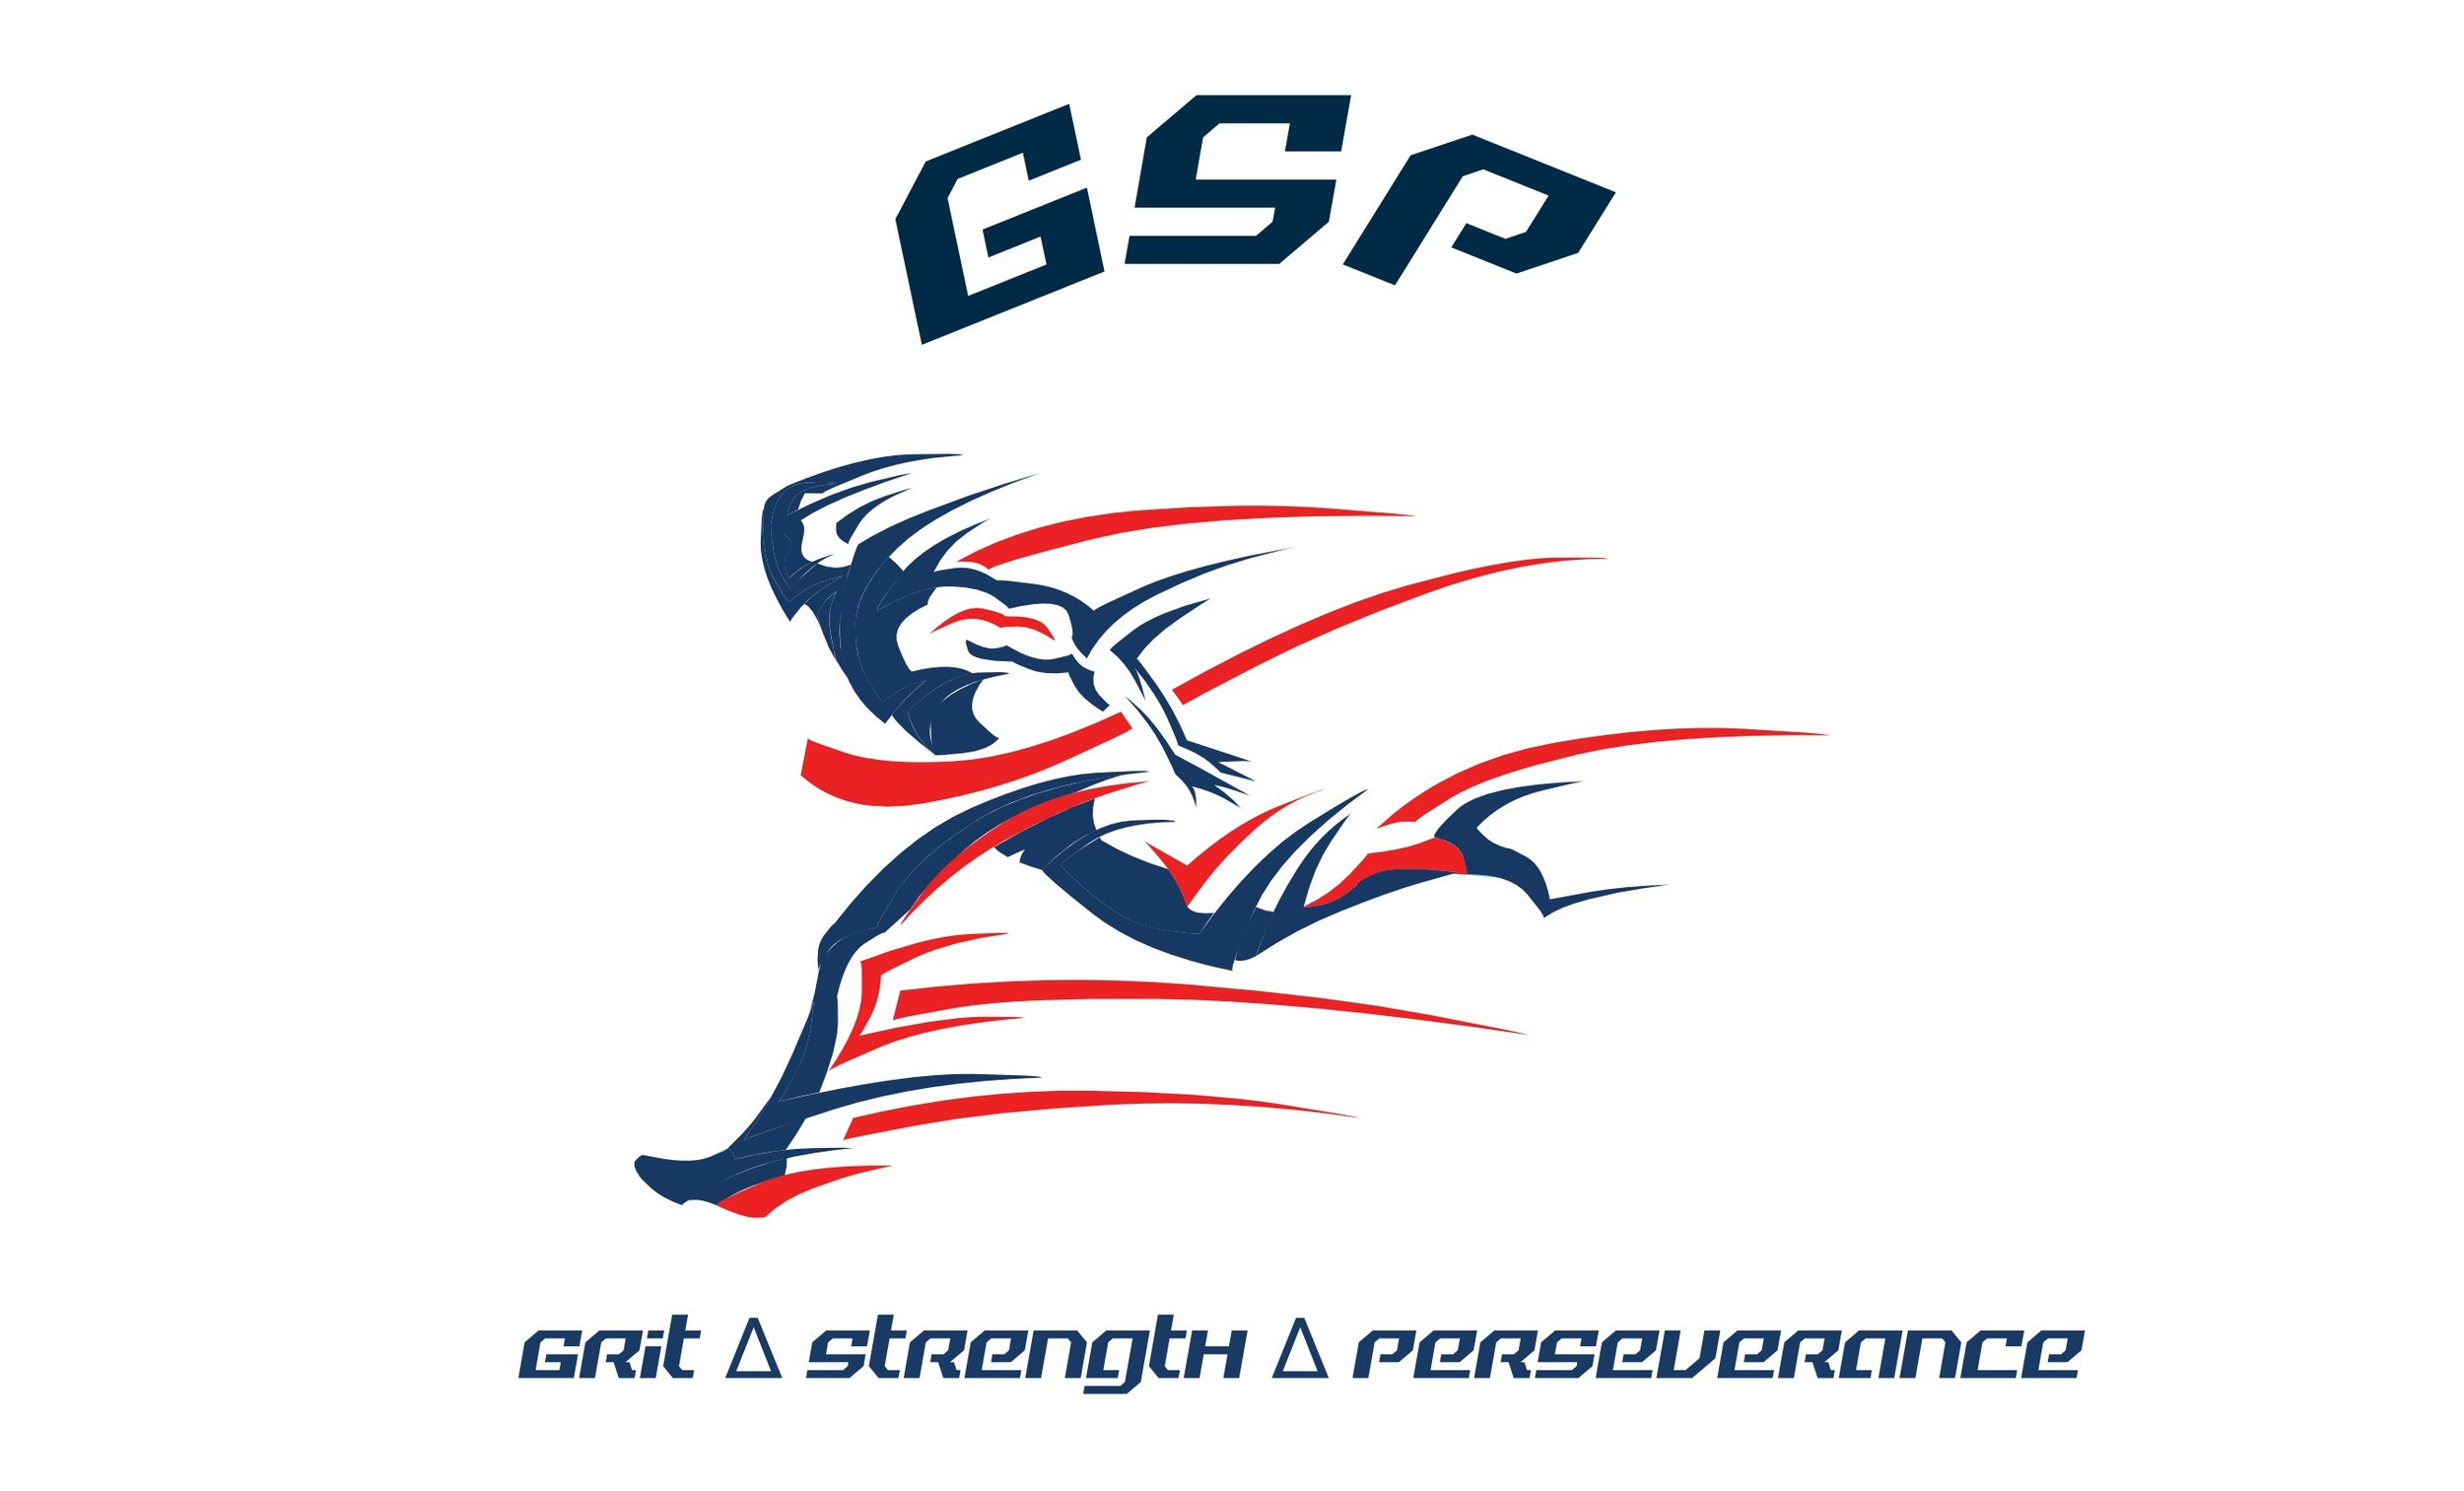 Learn more - Find out more about GSP